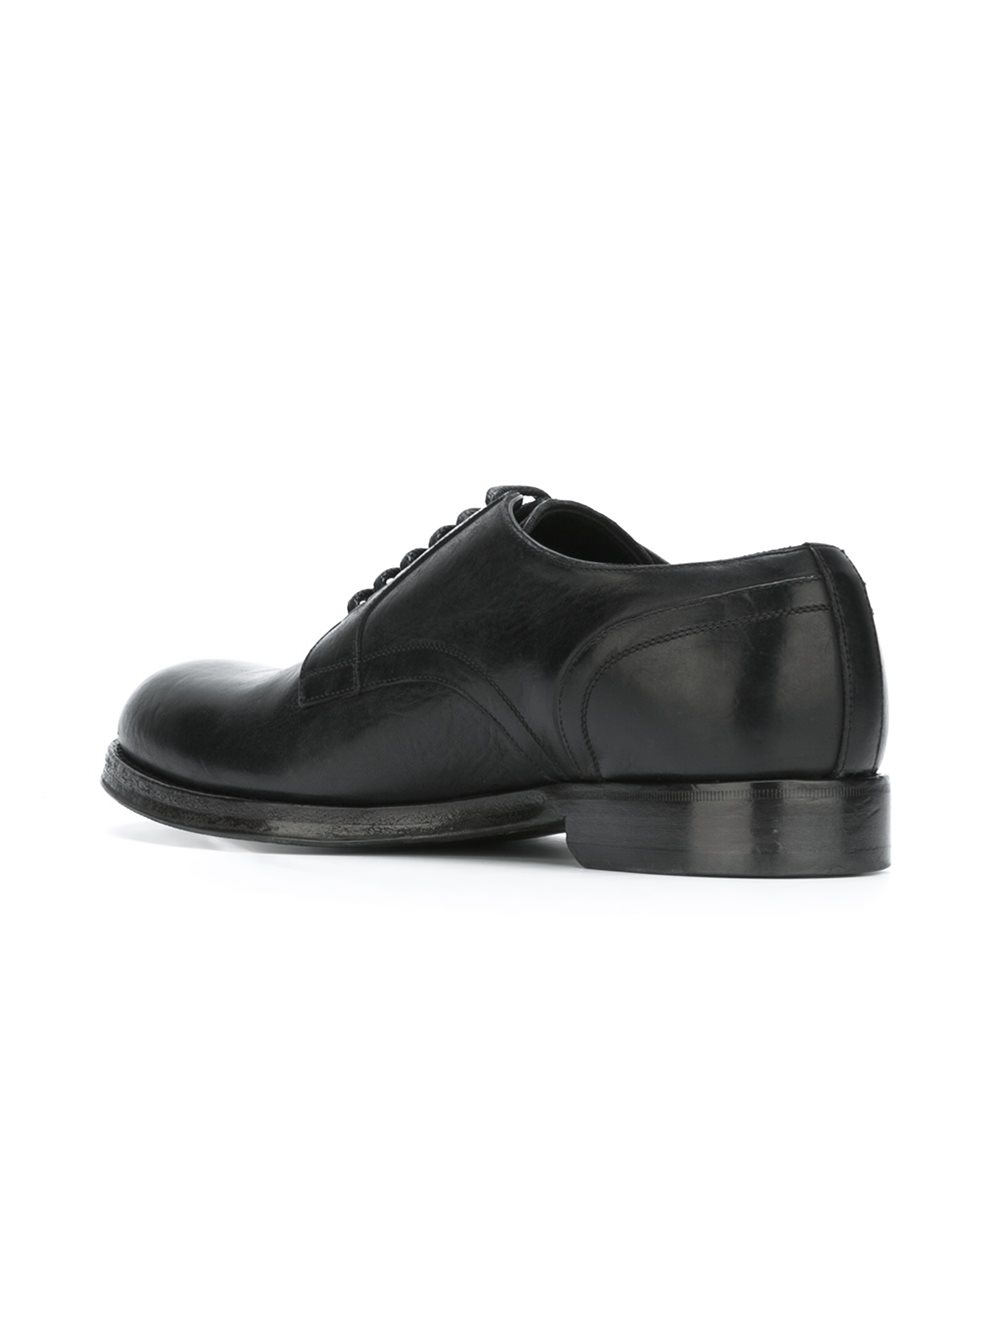 Derby Shoes Mens Chunky